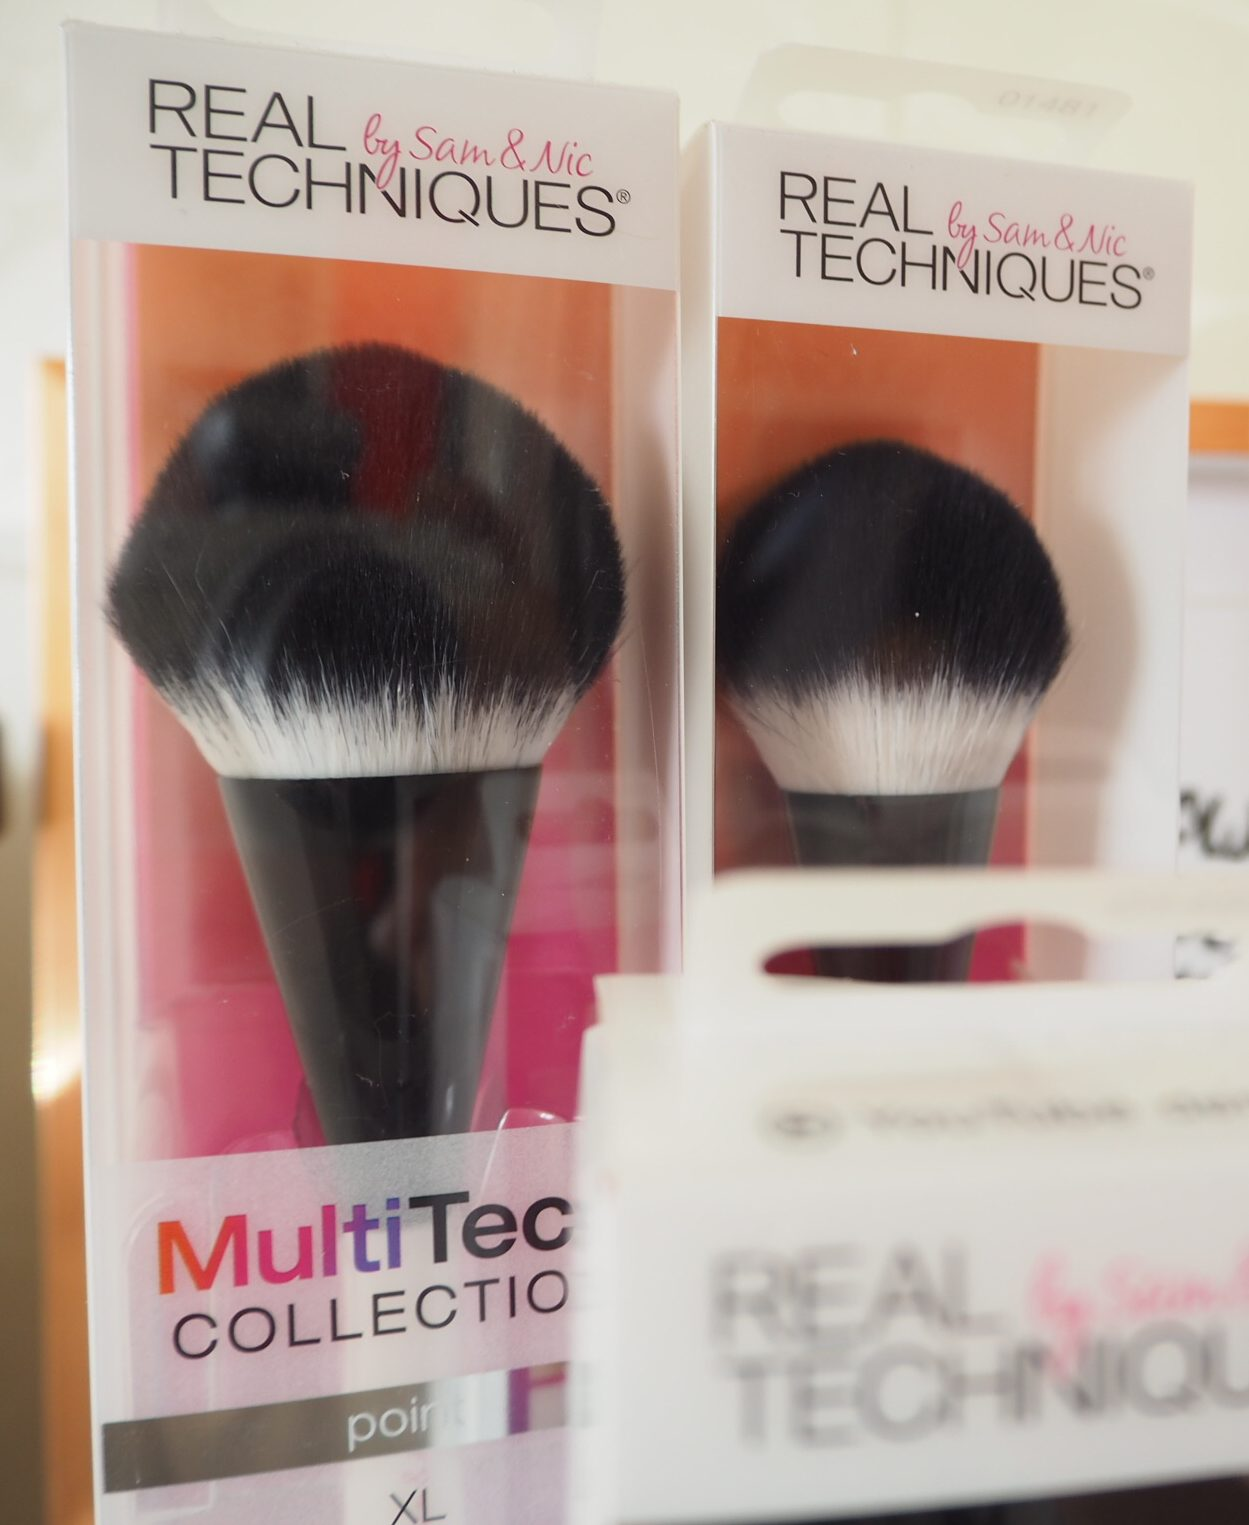 MultiTech Point XL and L brushes